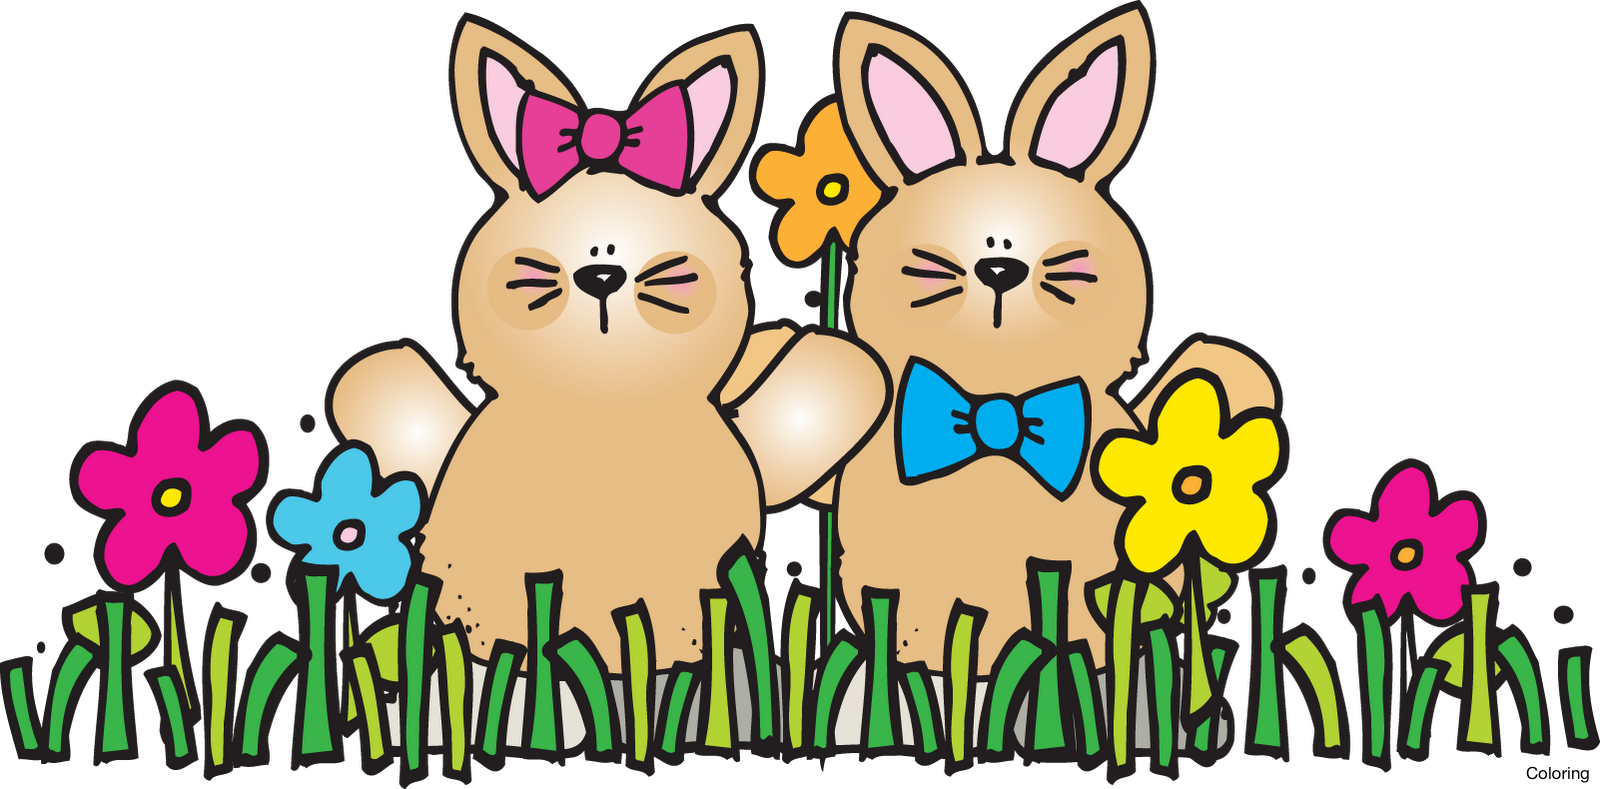 Holiday clipart spring. Bunny at getdrawings com